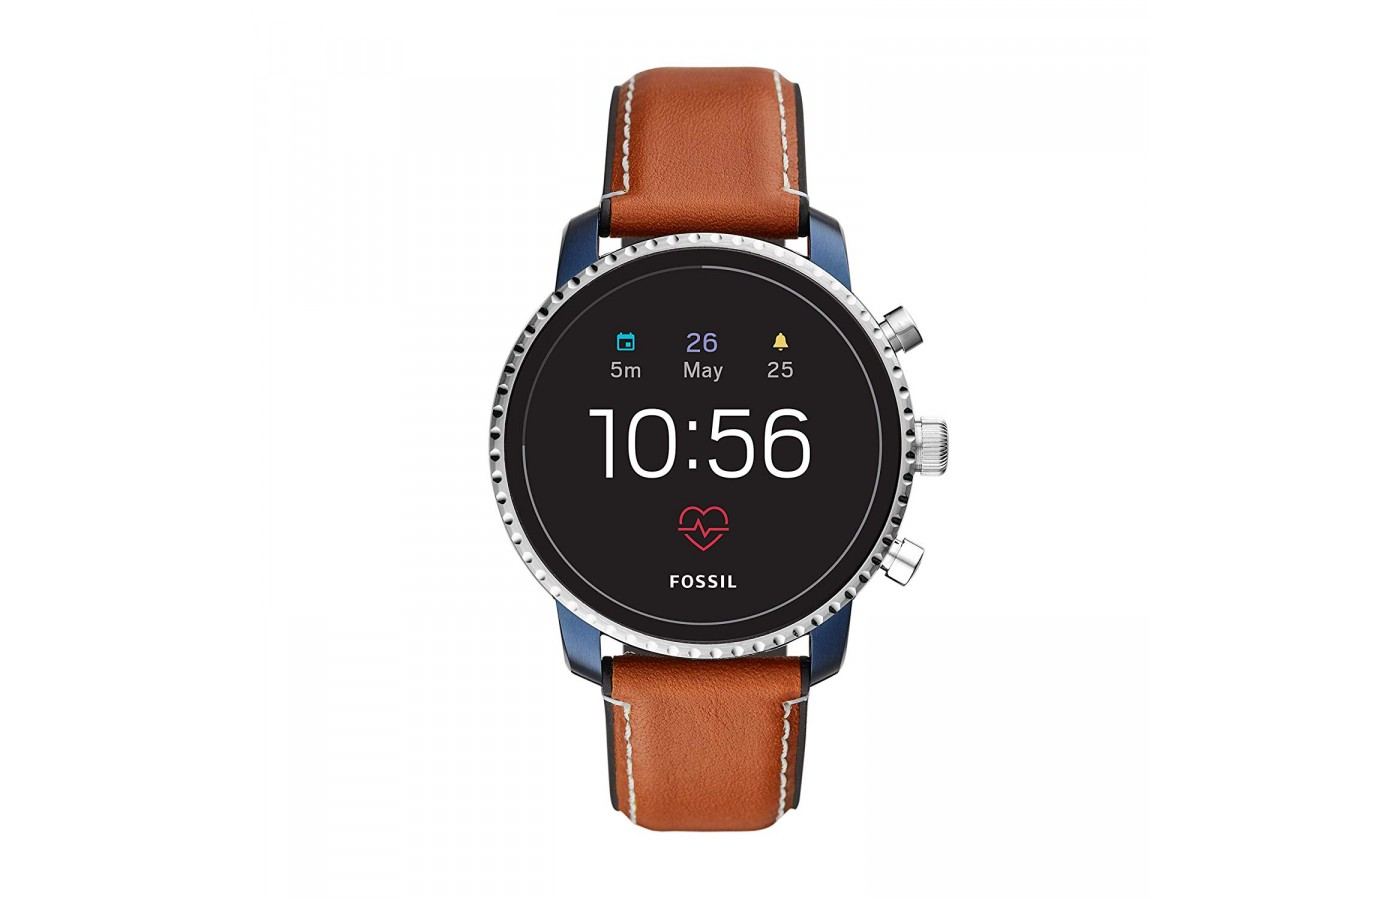 The Fossil Smartwatch allows you to receive important notifications.